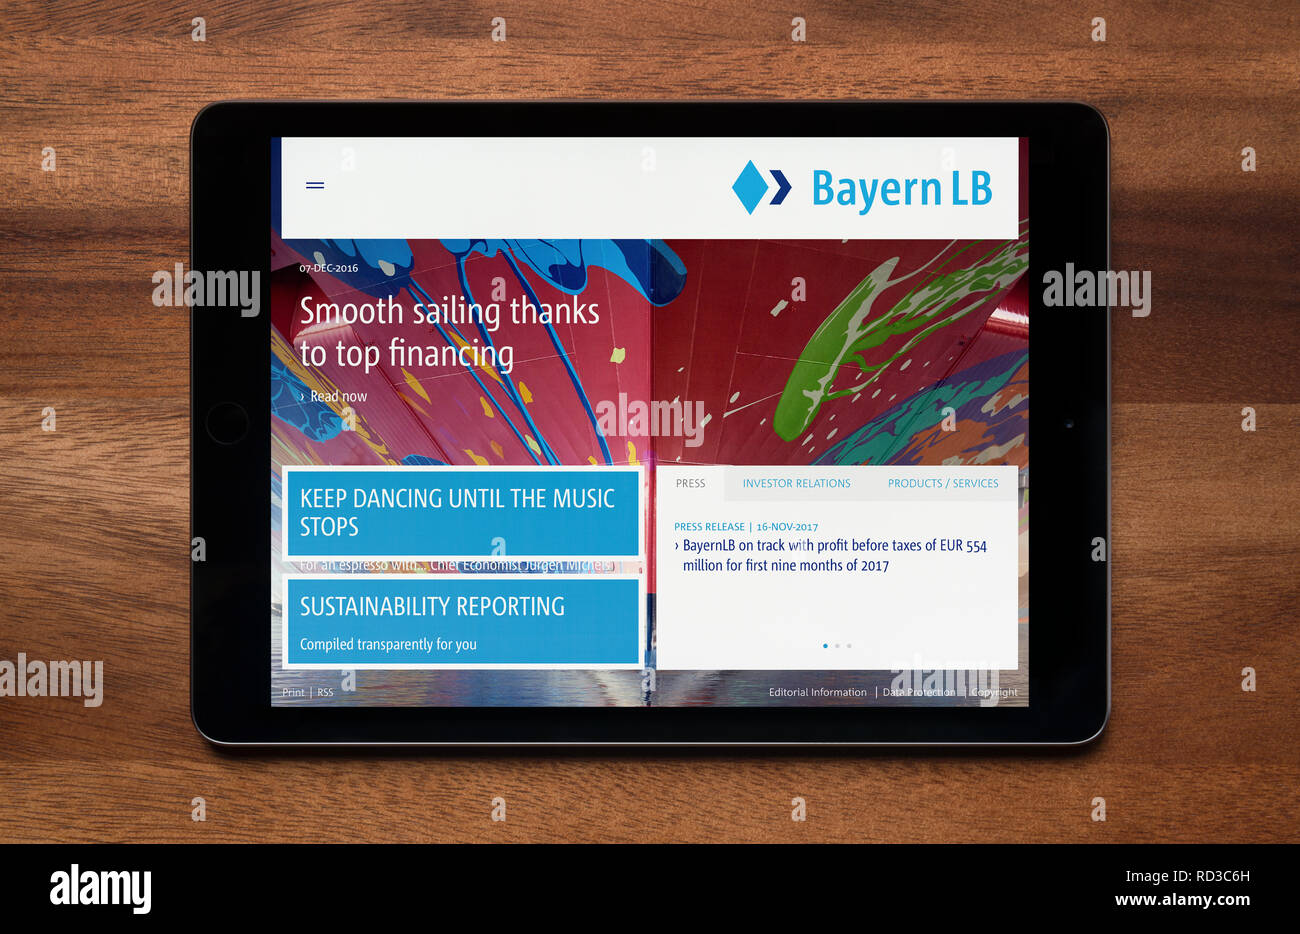 The website of Bayern LB is seen on an iPad tablet, which is resting on a wooden table (Editorial use only). - Stock Image